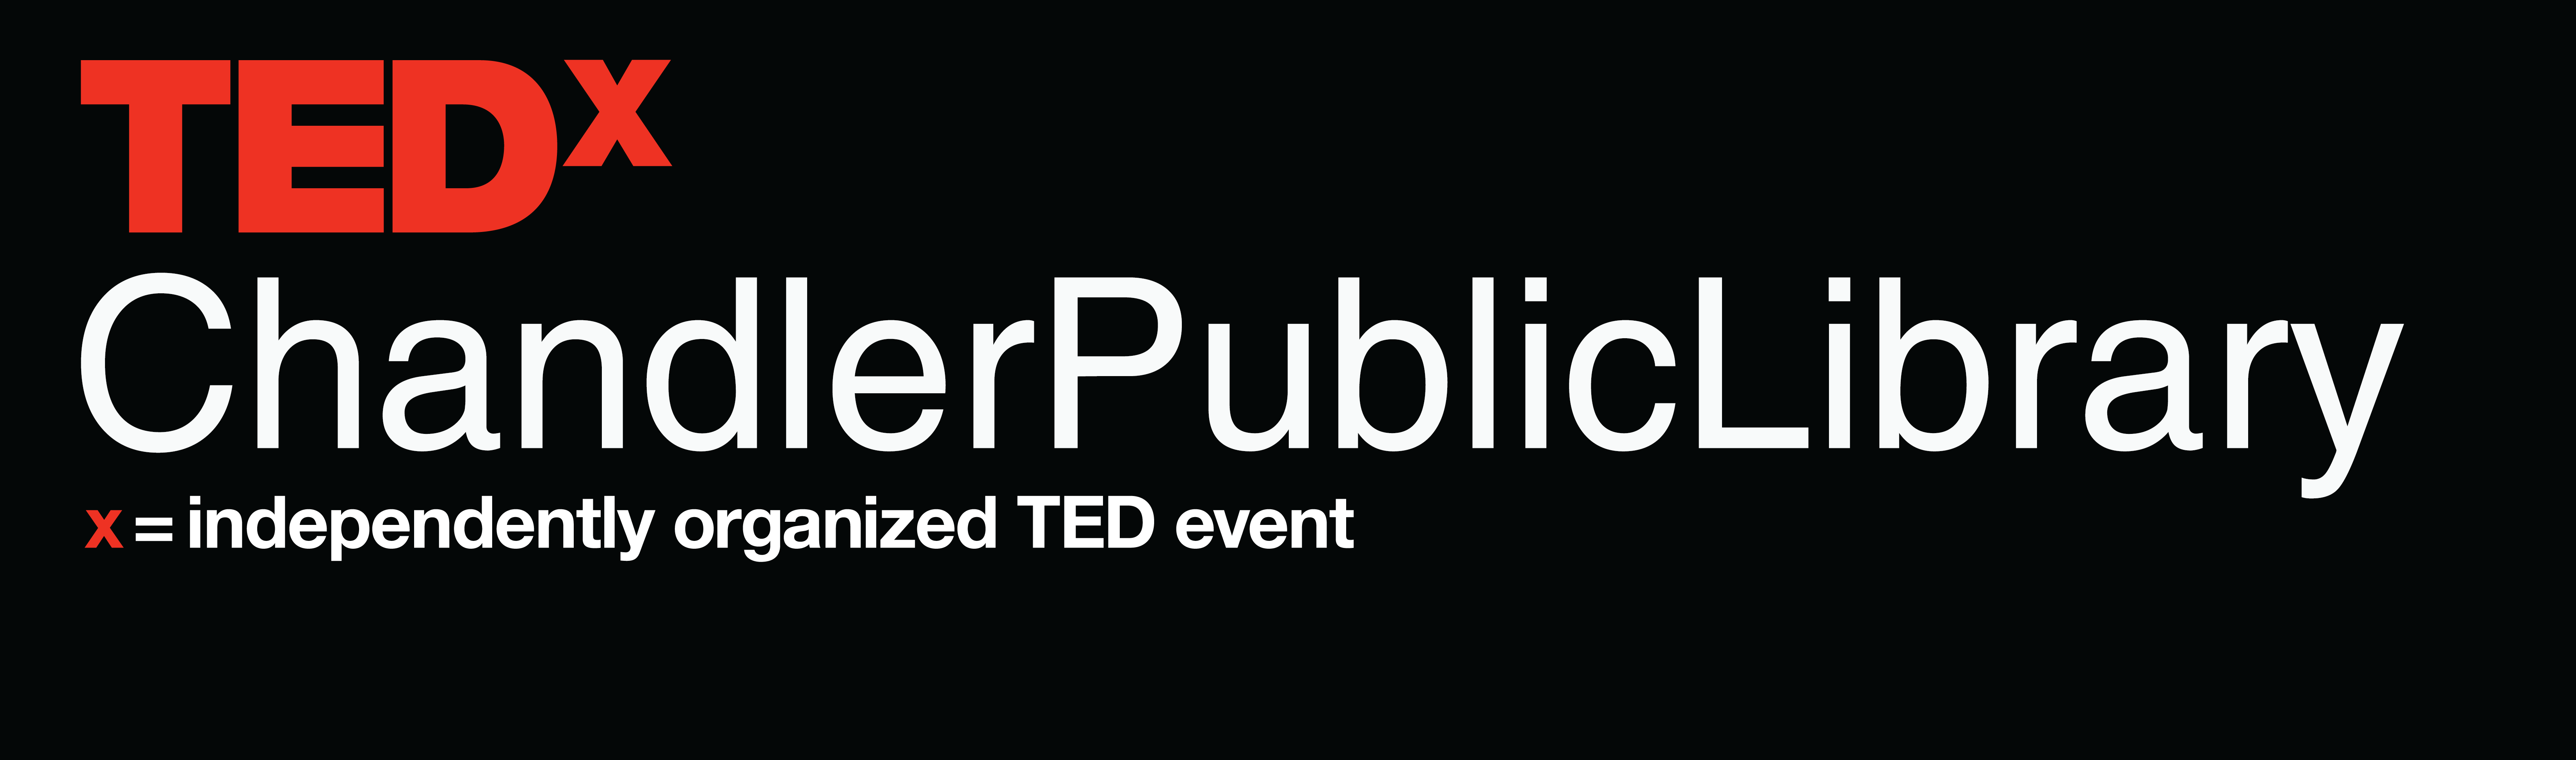 TEDx Chandlerpubliclibrary: Connect!